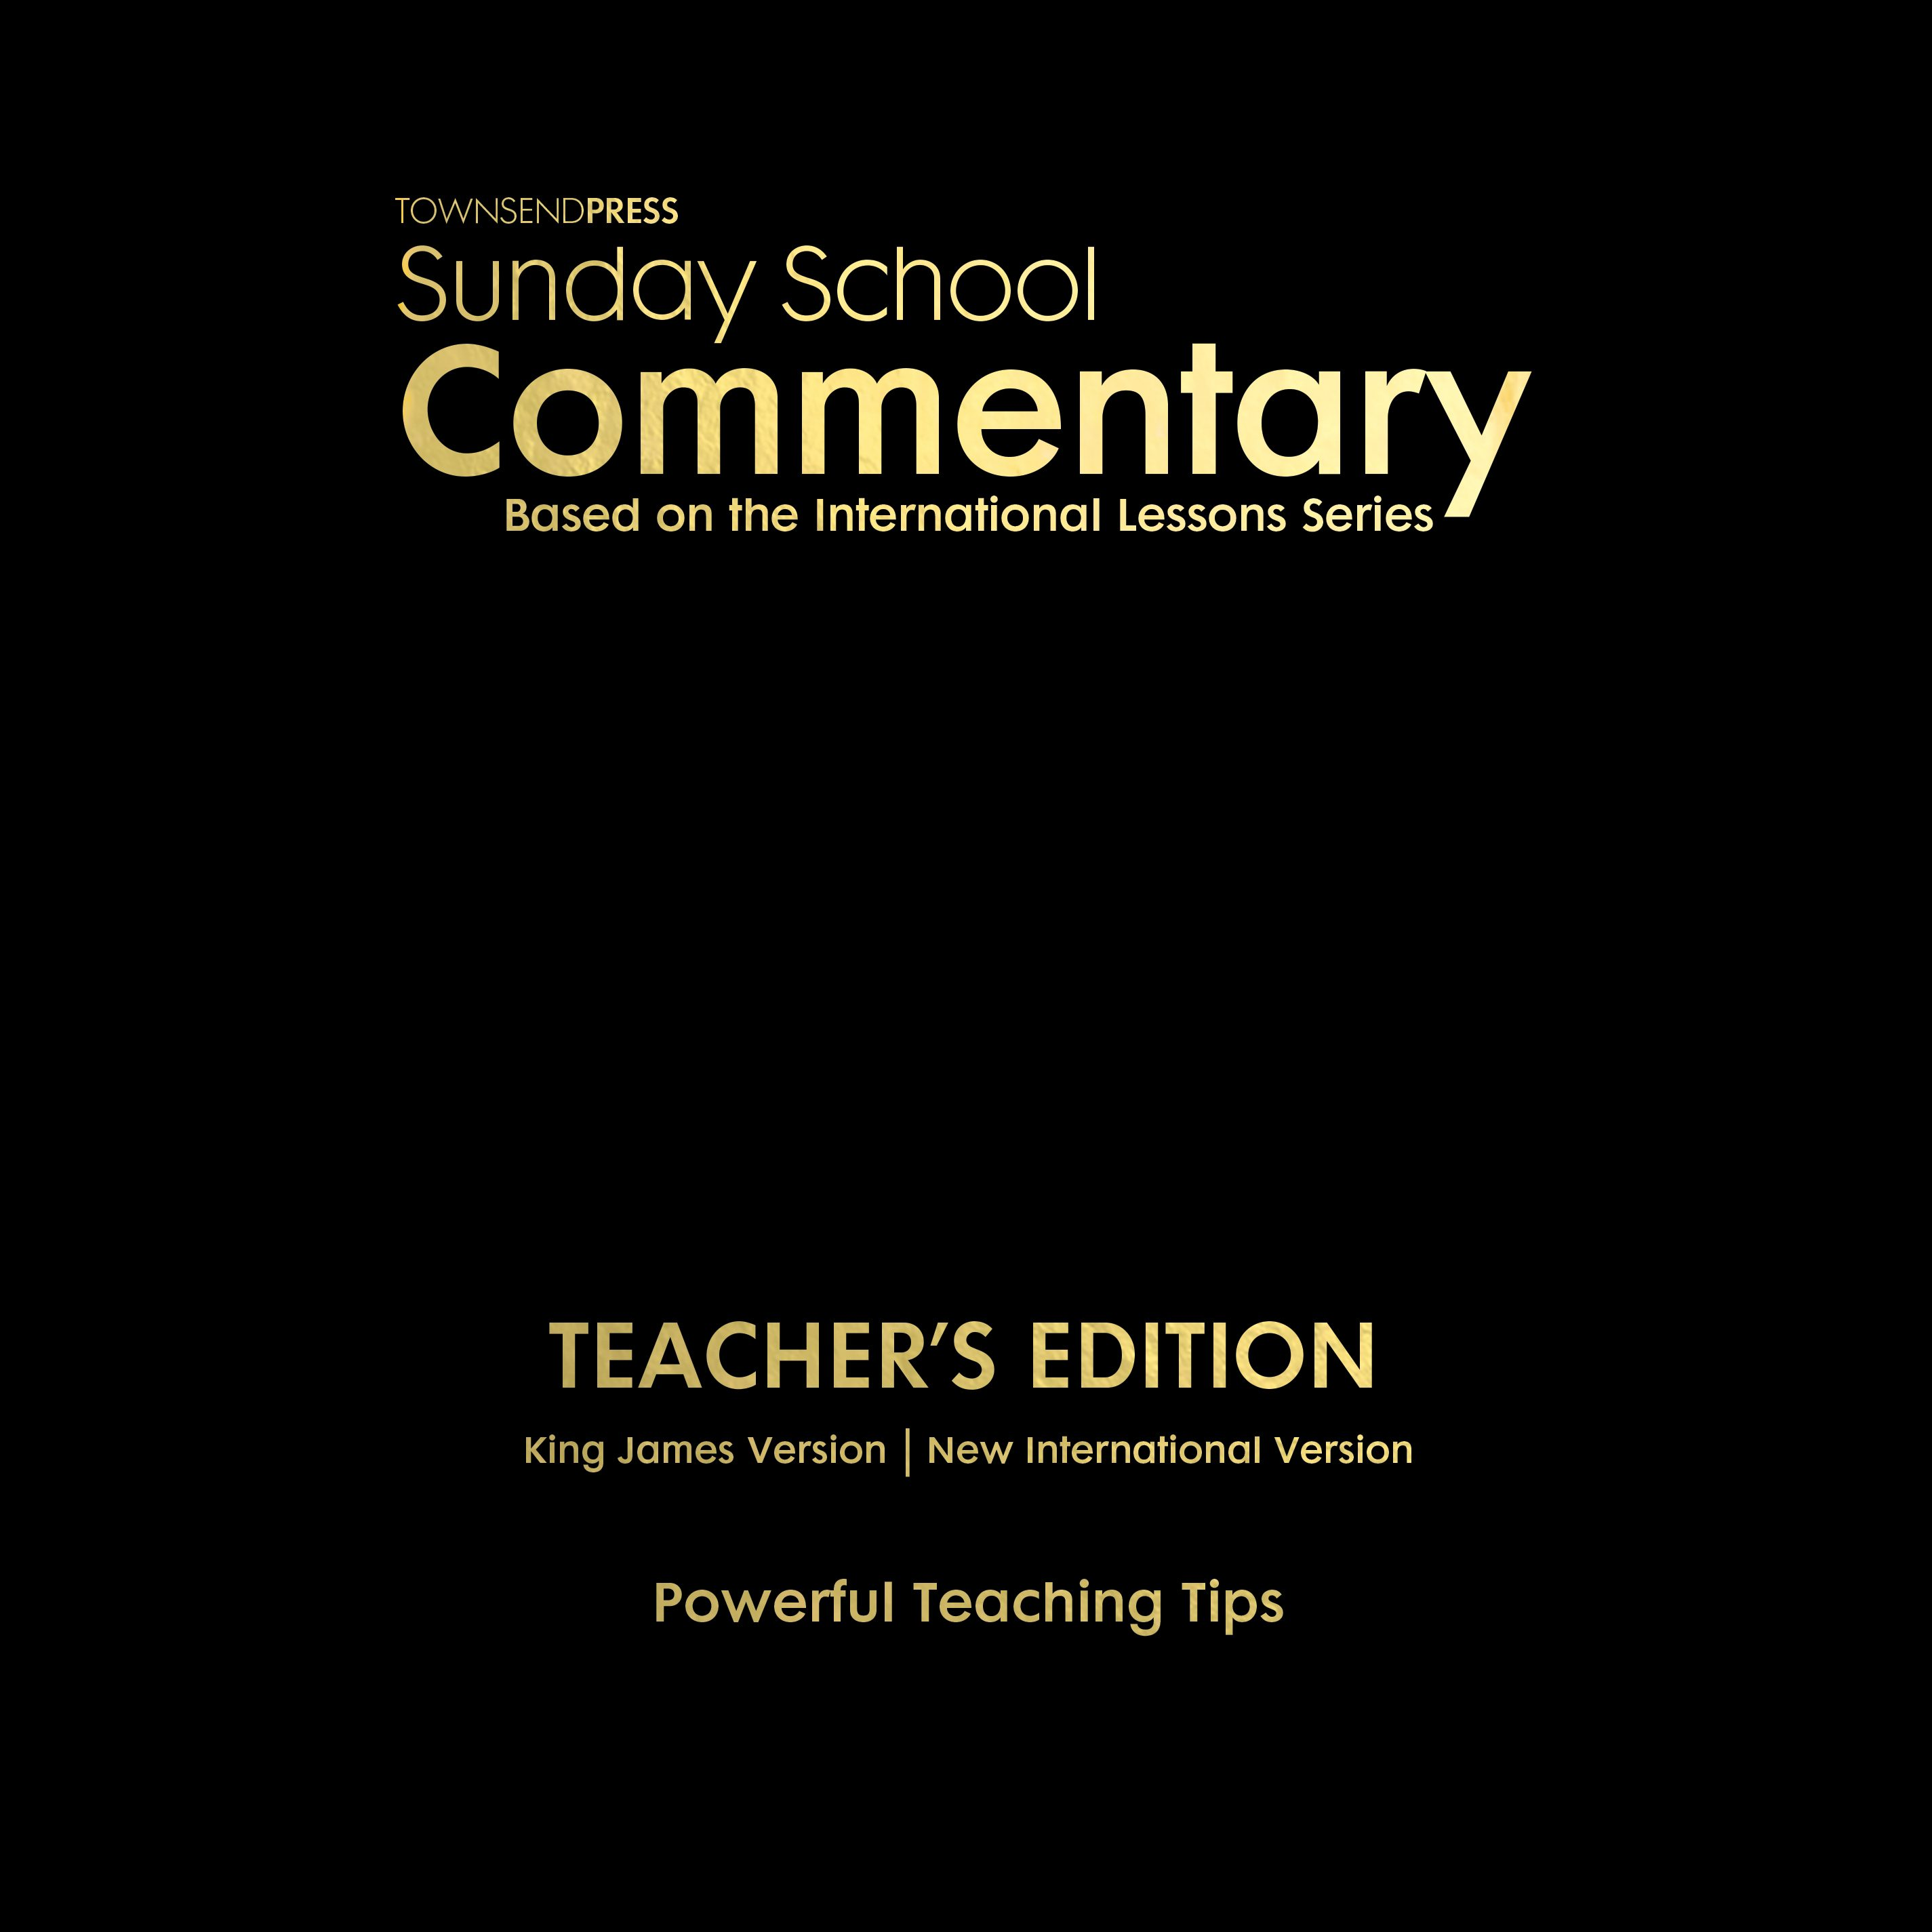 2018-2019 Townsend Press Sunday School Commentary Teacher's Edition